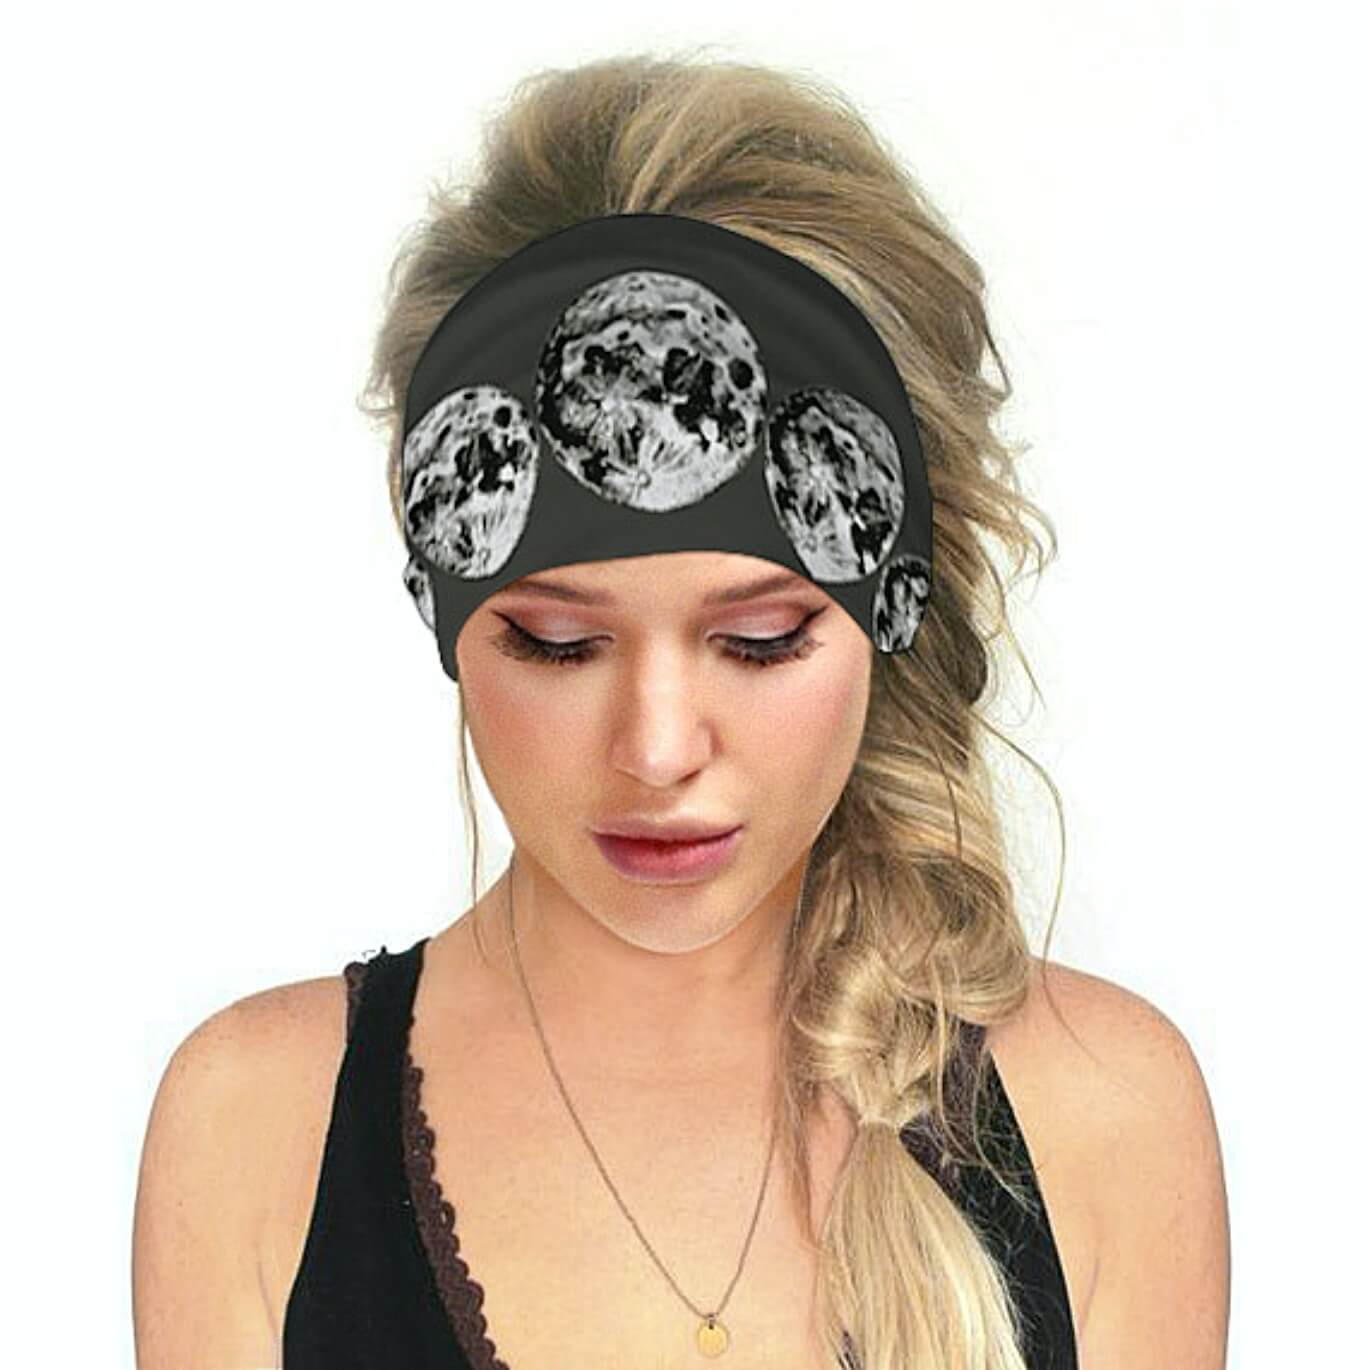 Hummingbird Space Printed Multifunctional Headband - Moon Phases offers a secure fit to hold your hair back, and along with moisture-wicking fabric, allows you to stay fresh and focused on your workout. Perfect for all sorts of workout activities. Also suitable for daily wear as a hair band, head wrap, bandana, face cover, morning makeup and nighttime moisturizing.